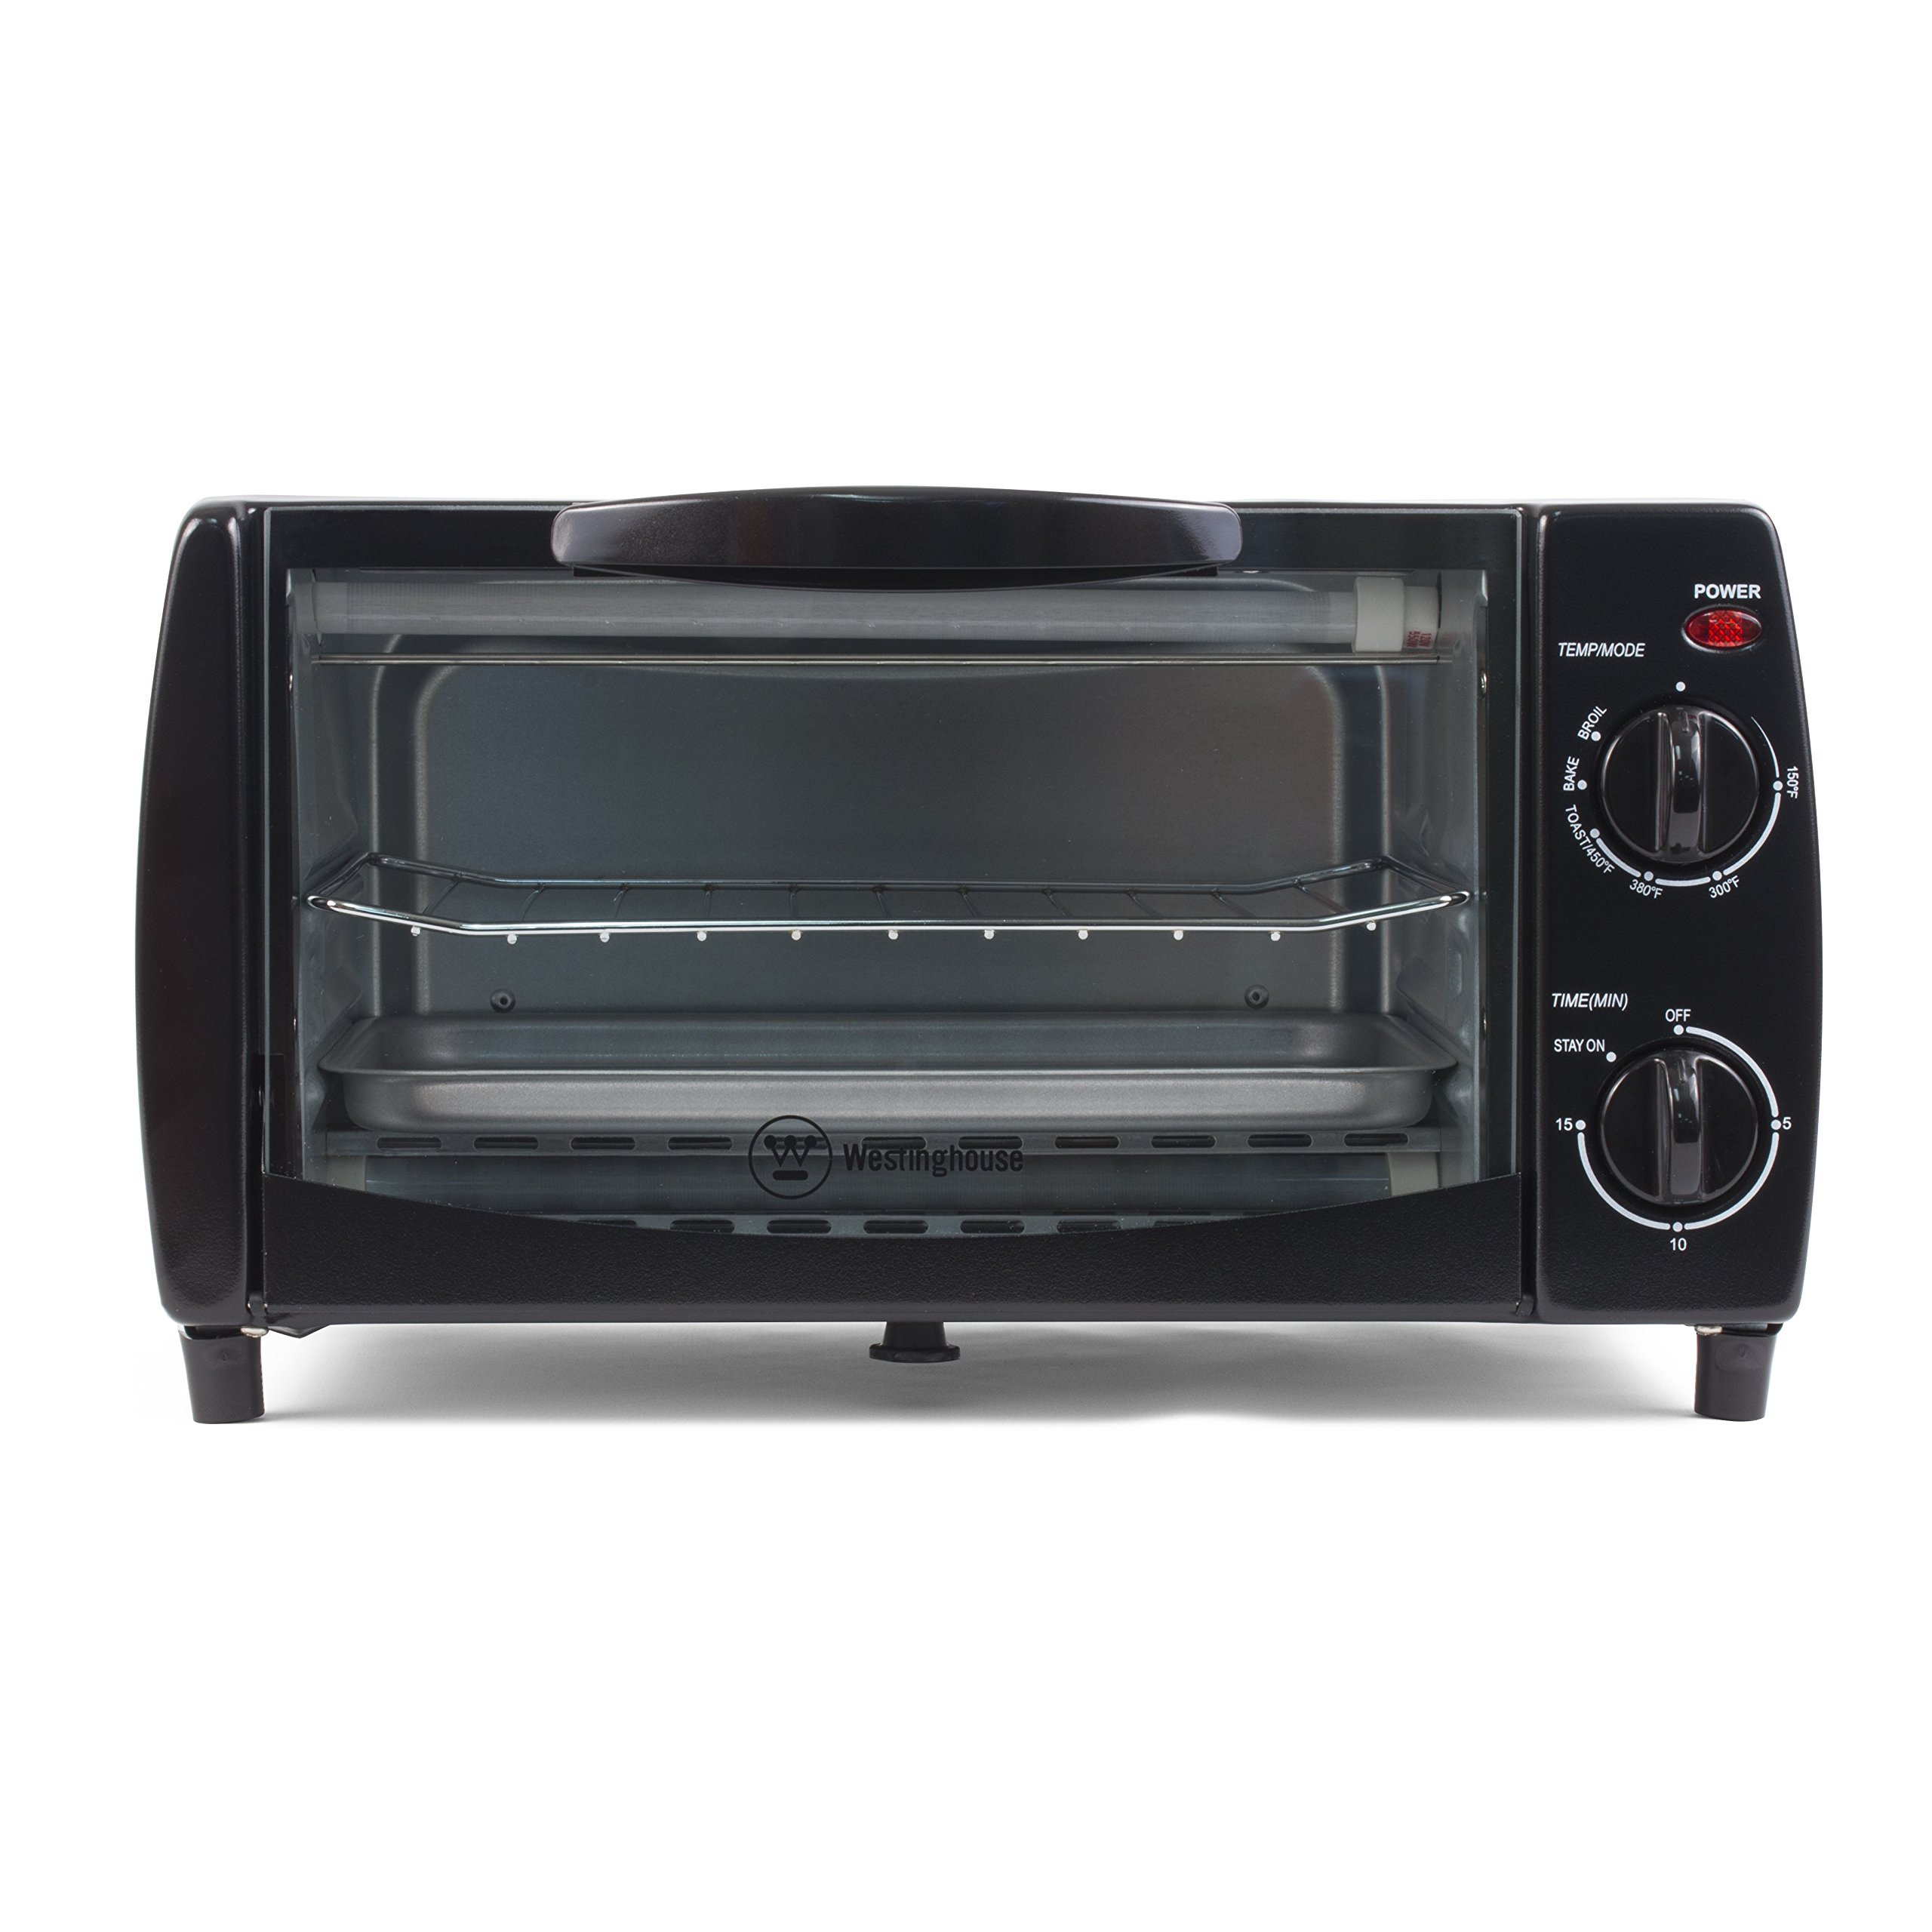 Westinghouse WTO1010B 4-Slice Toaster Oven, 10-Liter, 14.57''X11.42''X7.95'', Black by Westinghouse